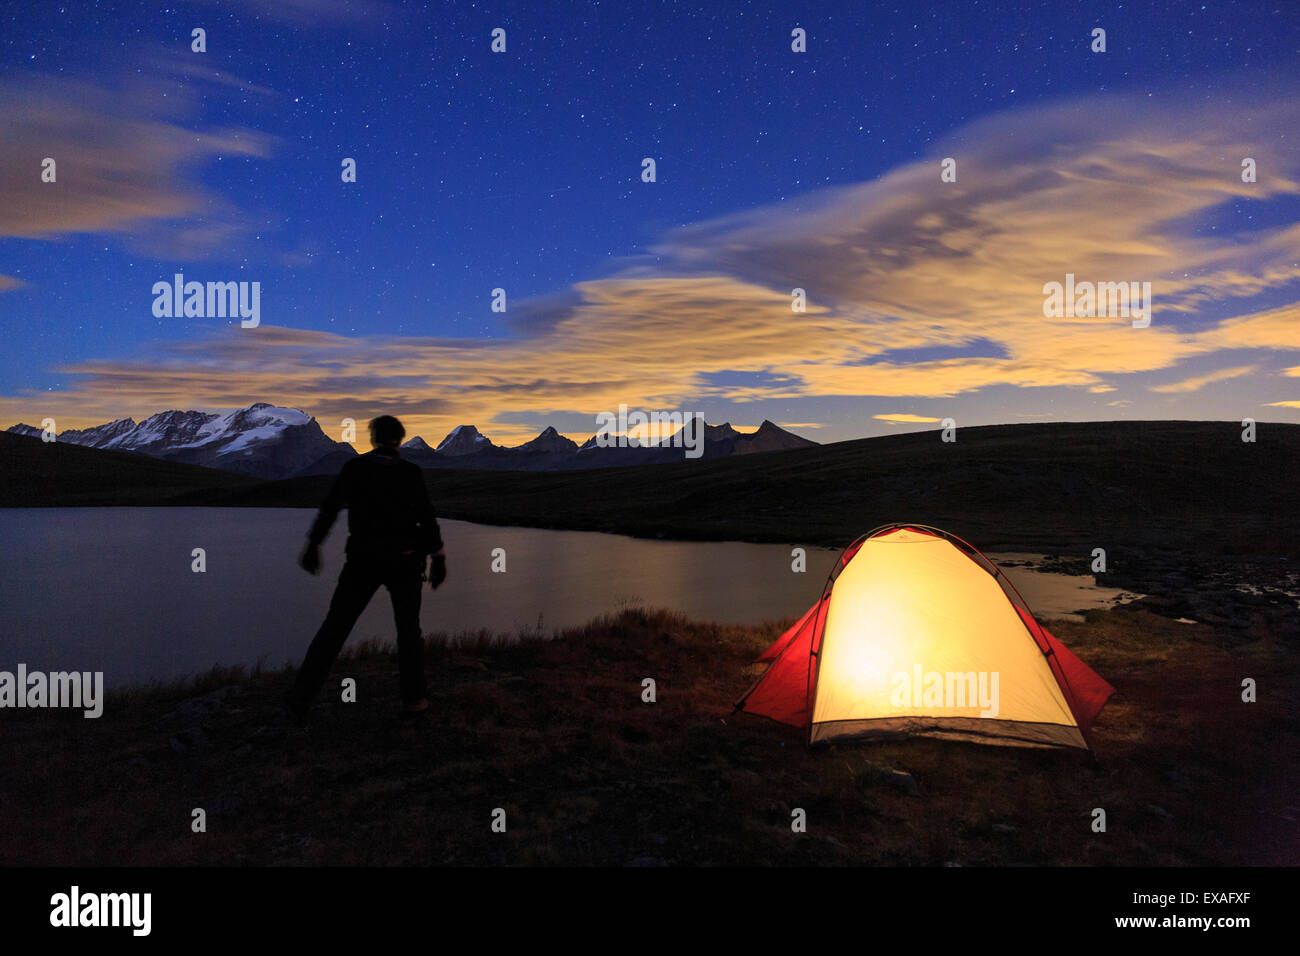 Camping under the stars on Rosset Lake at an altitude of 2709 meters, Gran Paradiso National Park, Alpi Graie, Italy - Stock Image